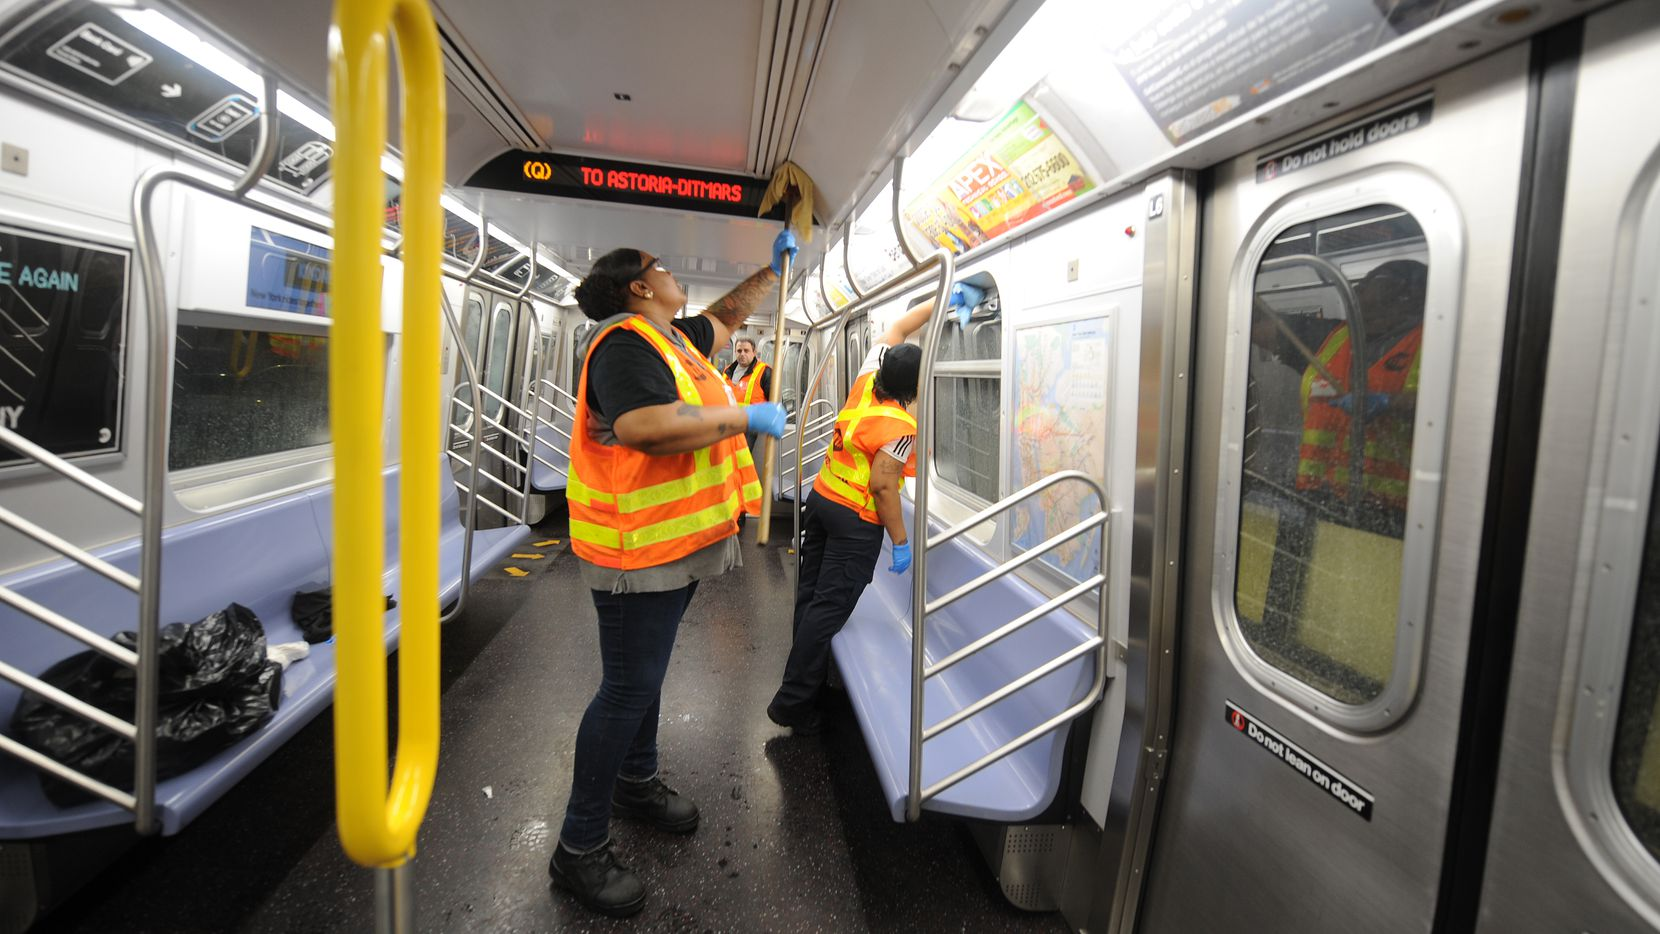 MTA personnel clean a subway car in Brooklyn, New York on Tuesday.